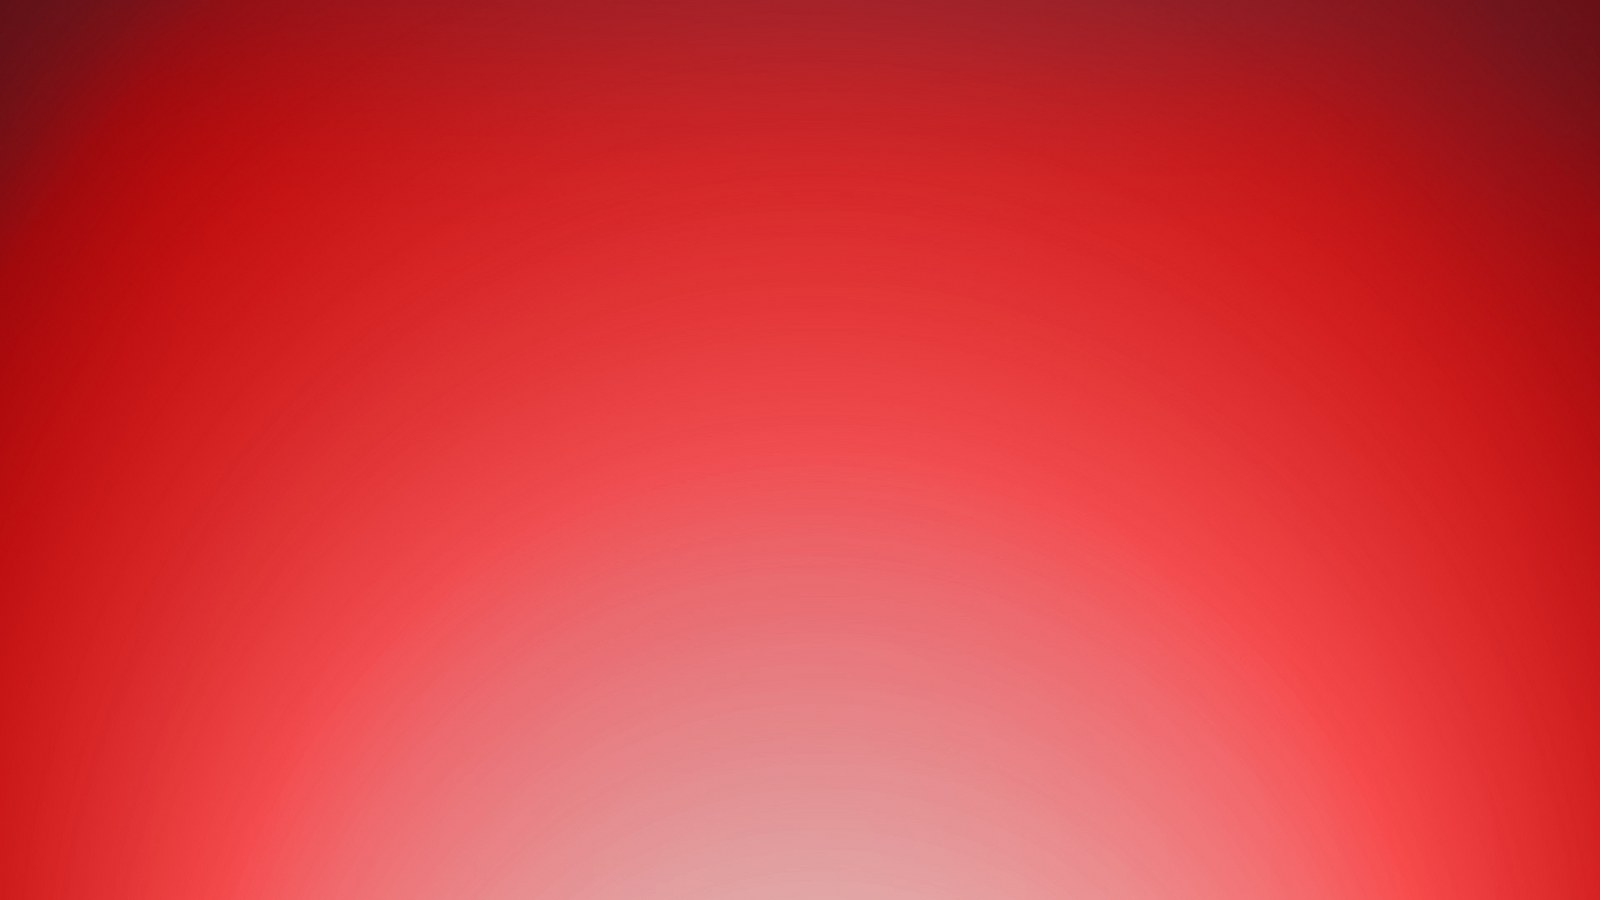 Download texture red velvet background fabric picture